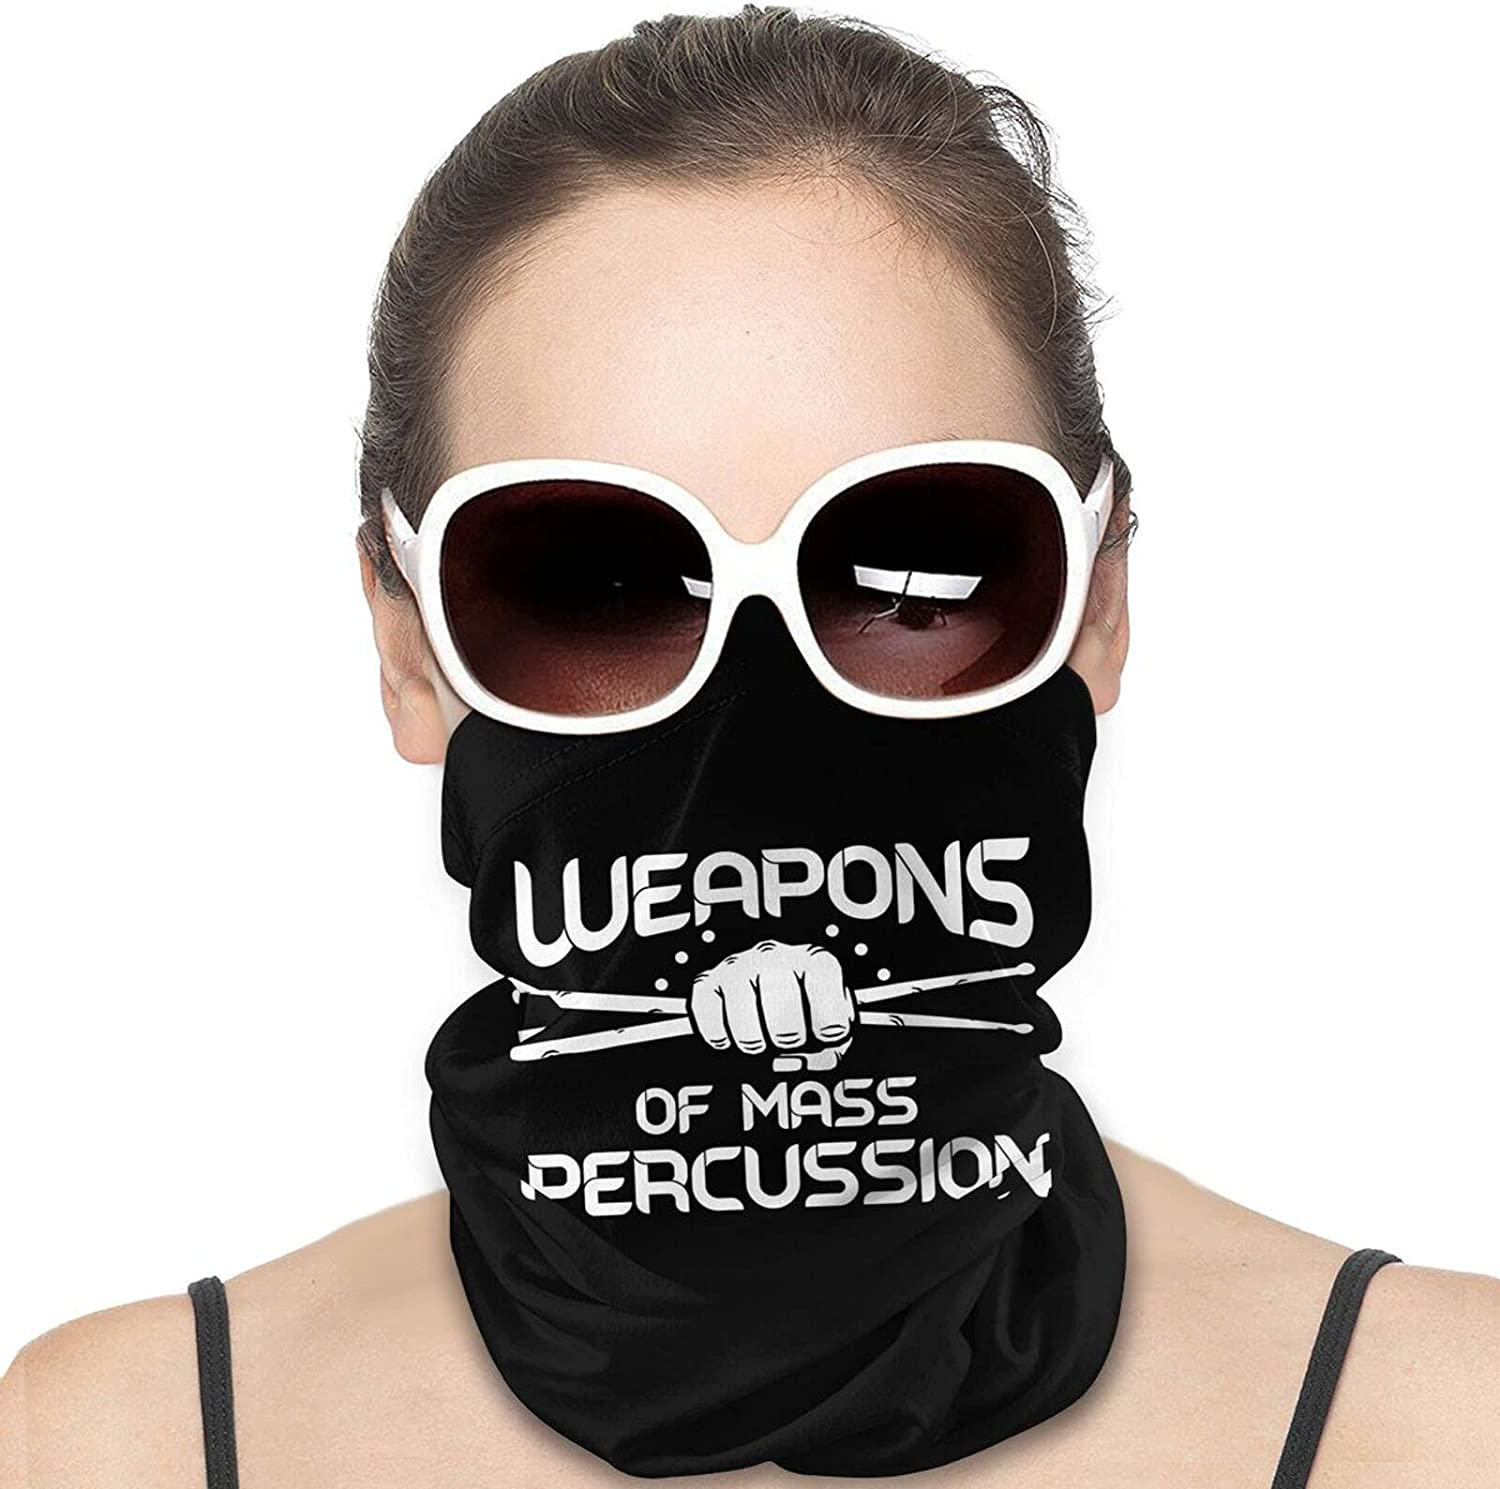 Weapons of Mass Percussion Round Neck Gaiter Bandnas Face Cover Uv Protection Prevent bask in Ice Scarf Headbands Perfect for Motorcycle Cycling Running Festival Raves Outdoors